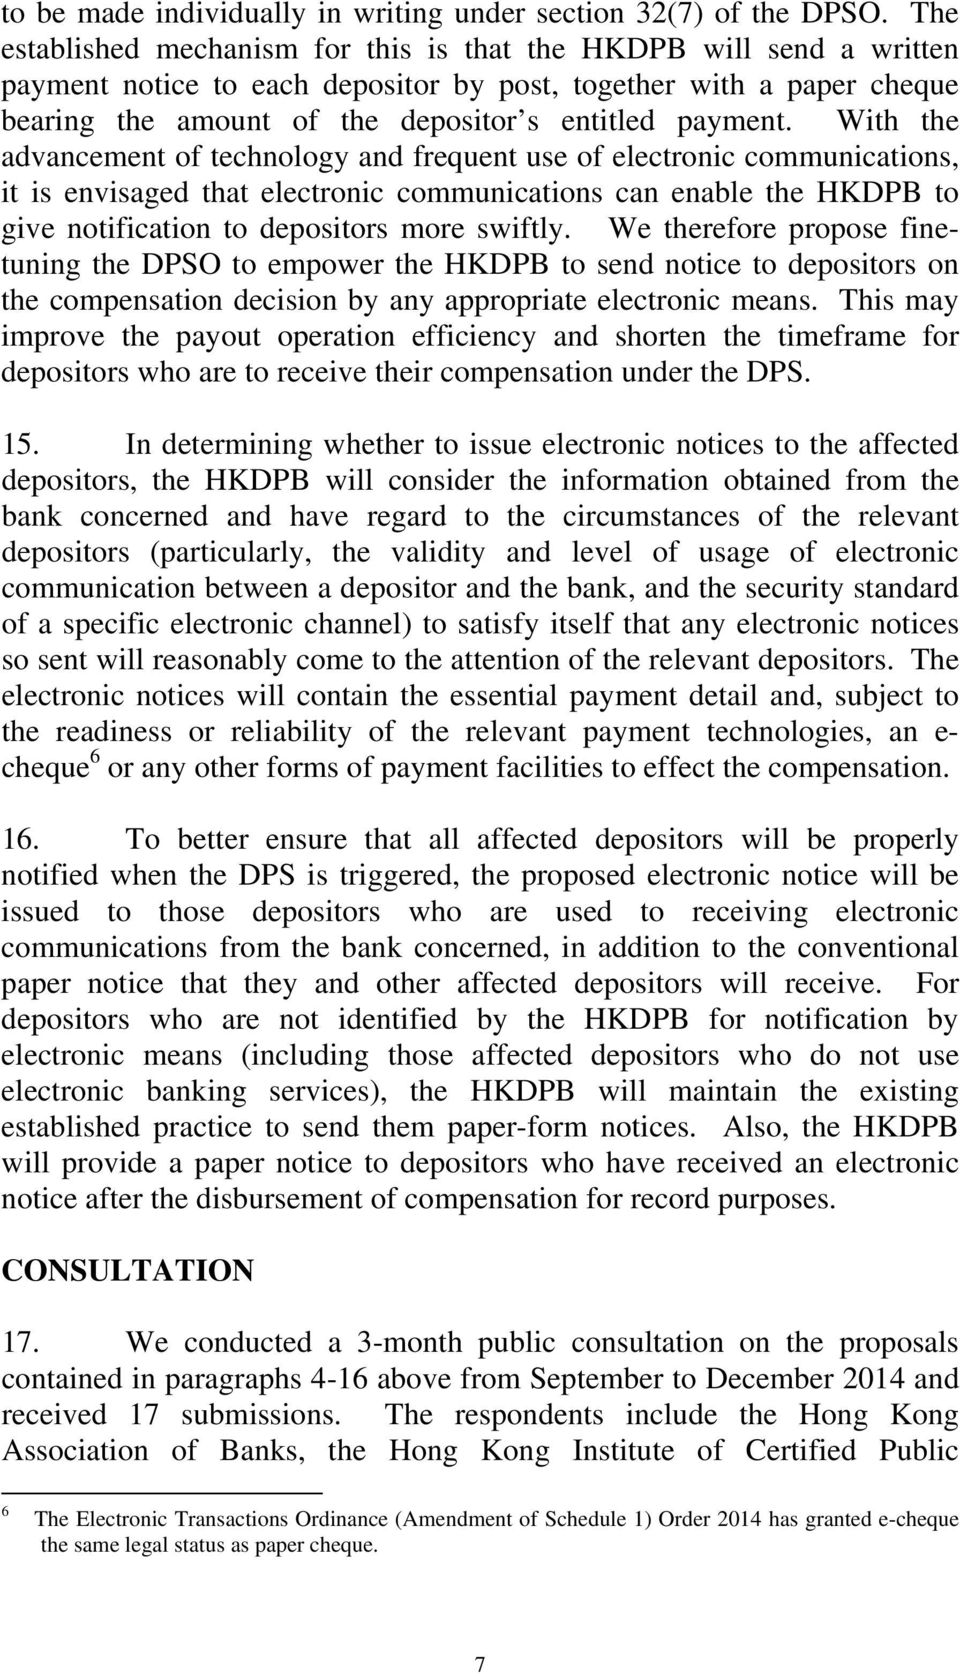 With the advancement of technology and frequent use of electronic communications, it is envisaged that electronic communications can enable the HKDPB to give notification to depositors more swiftly.